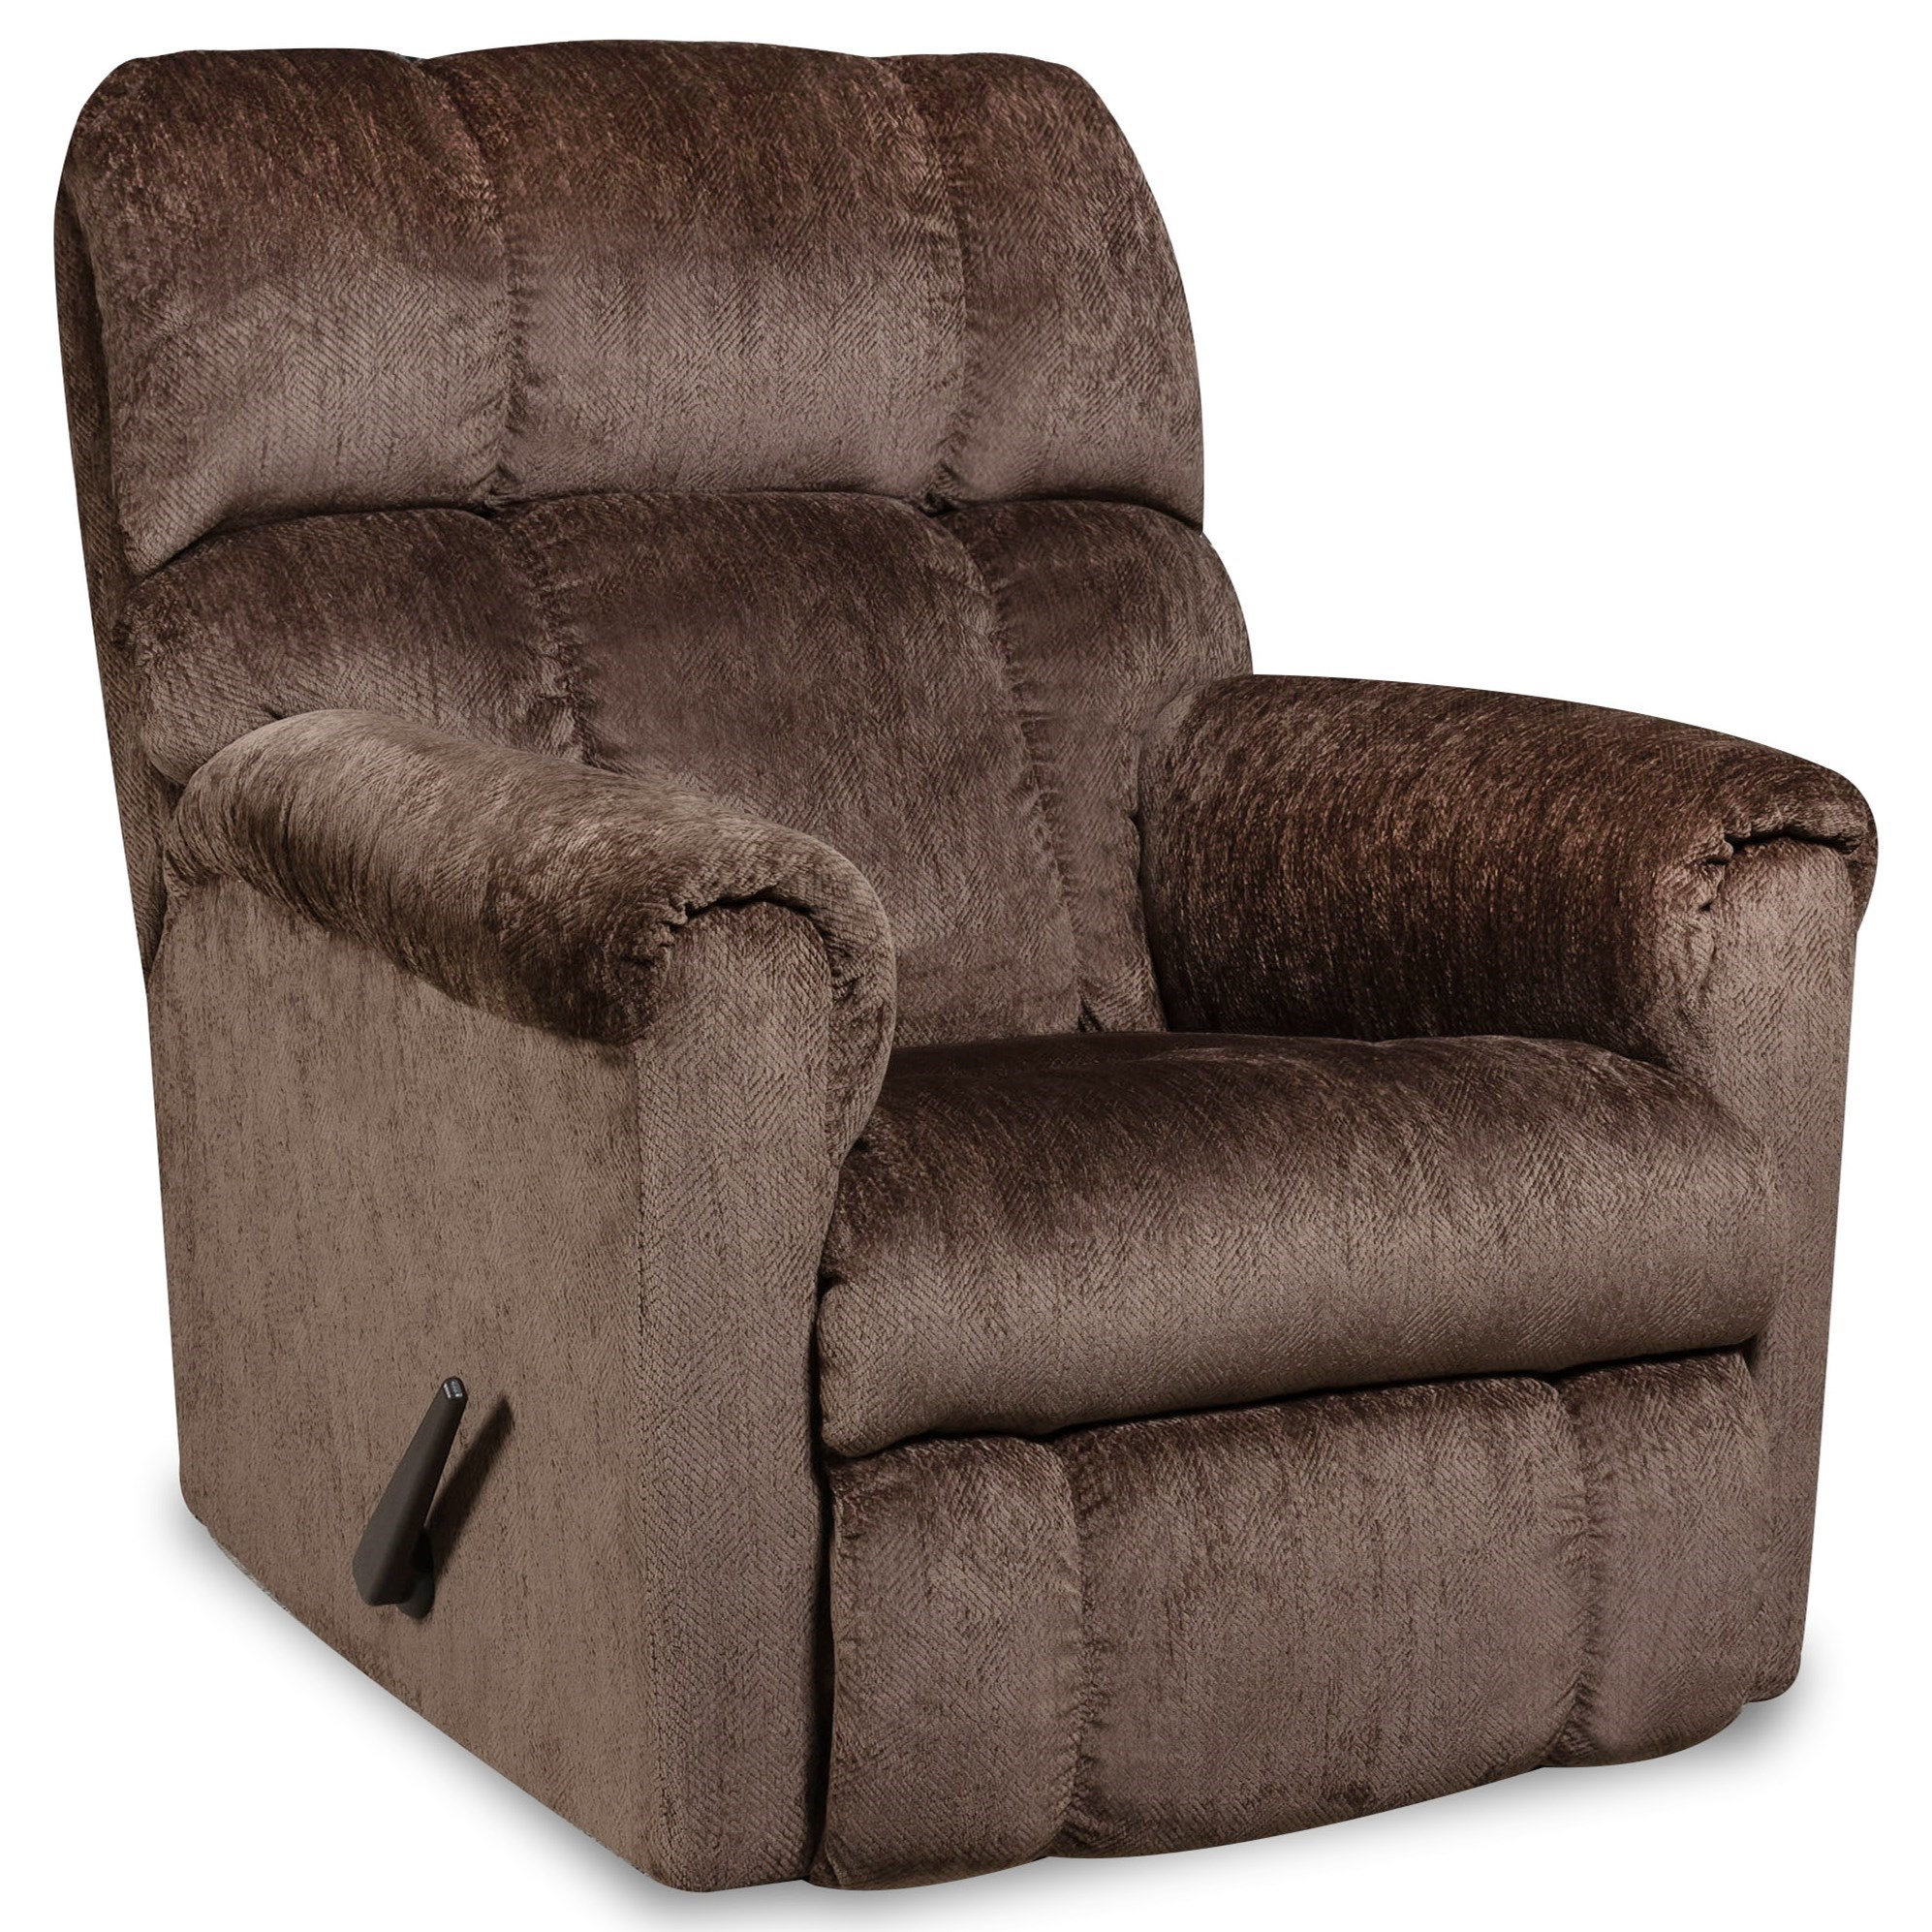 134 Chaise Recliner by HomeStretch at Turk Furniture